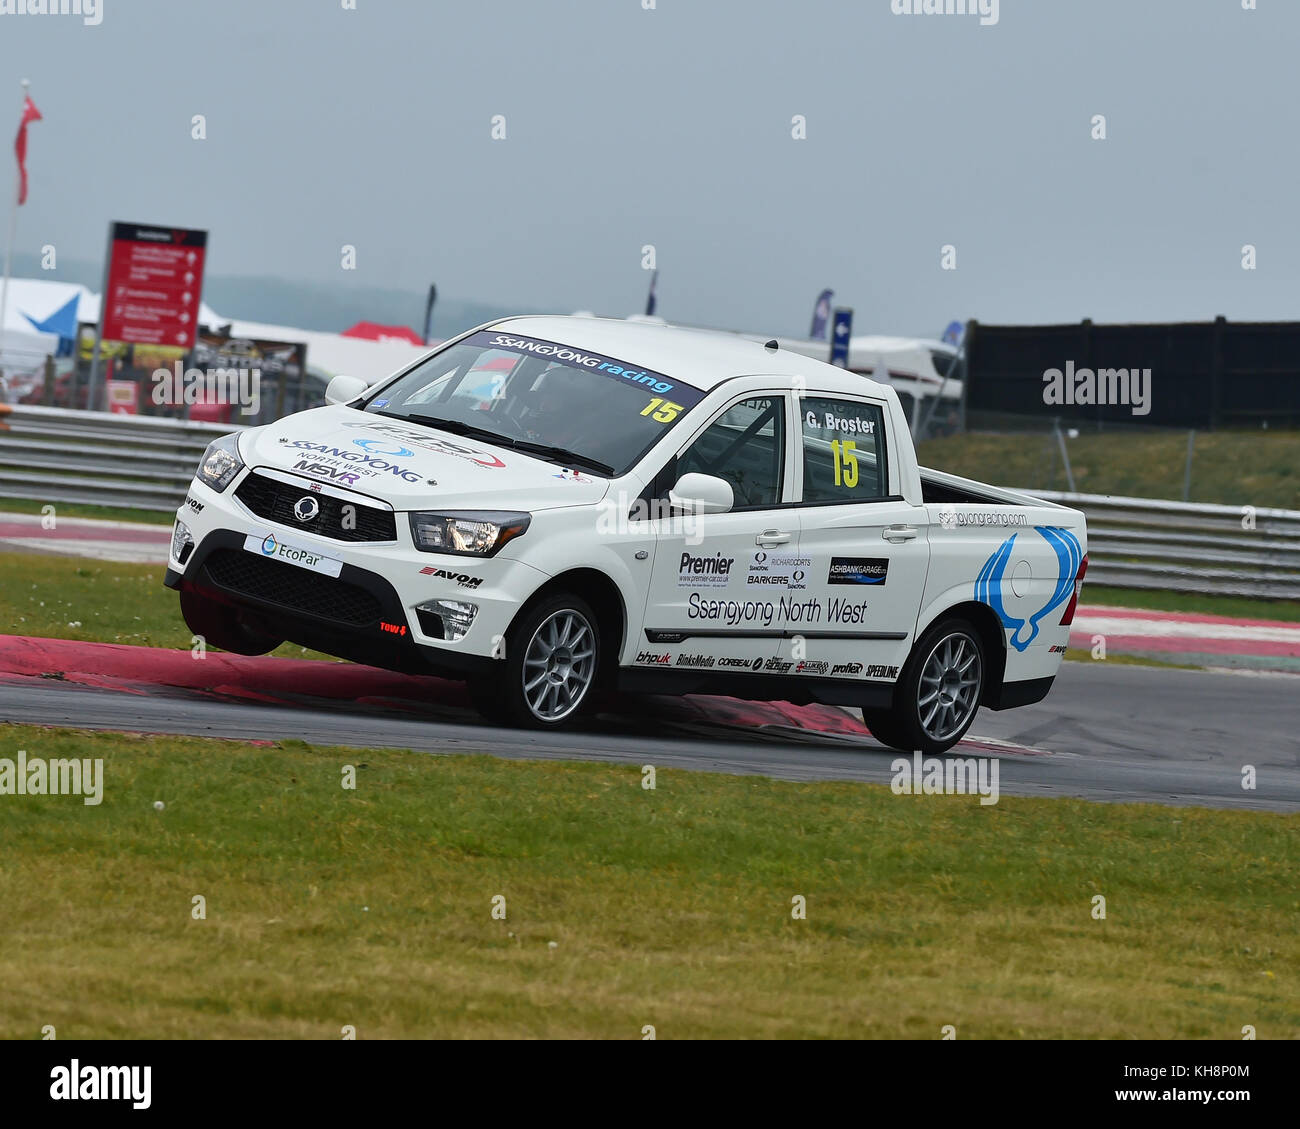 Glenn Broster, SsangYong  Musso, SsangYong Racing Challenge, Mini Festival, MSVR, Snetterton, May 2017, vehicles, - Stock Image